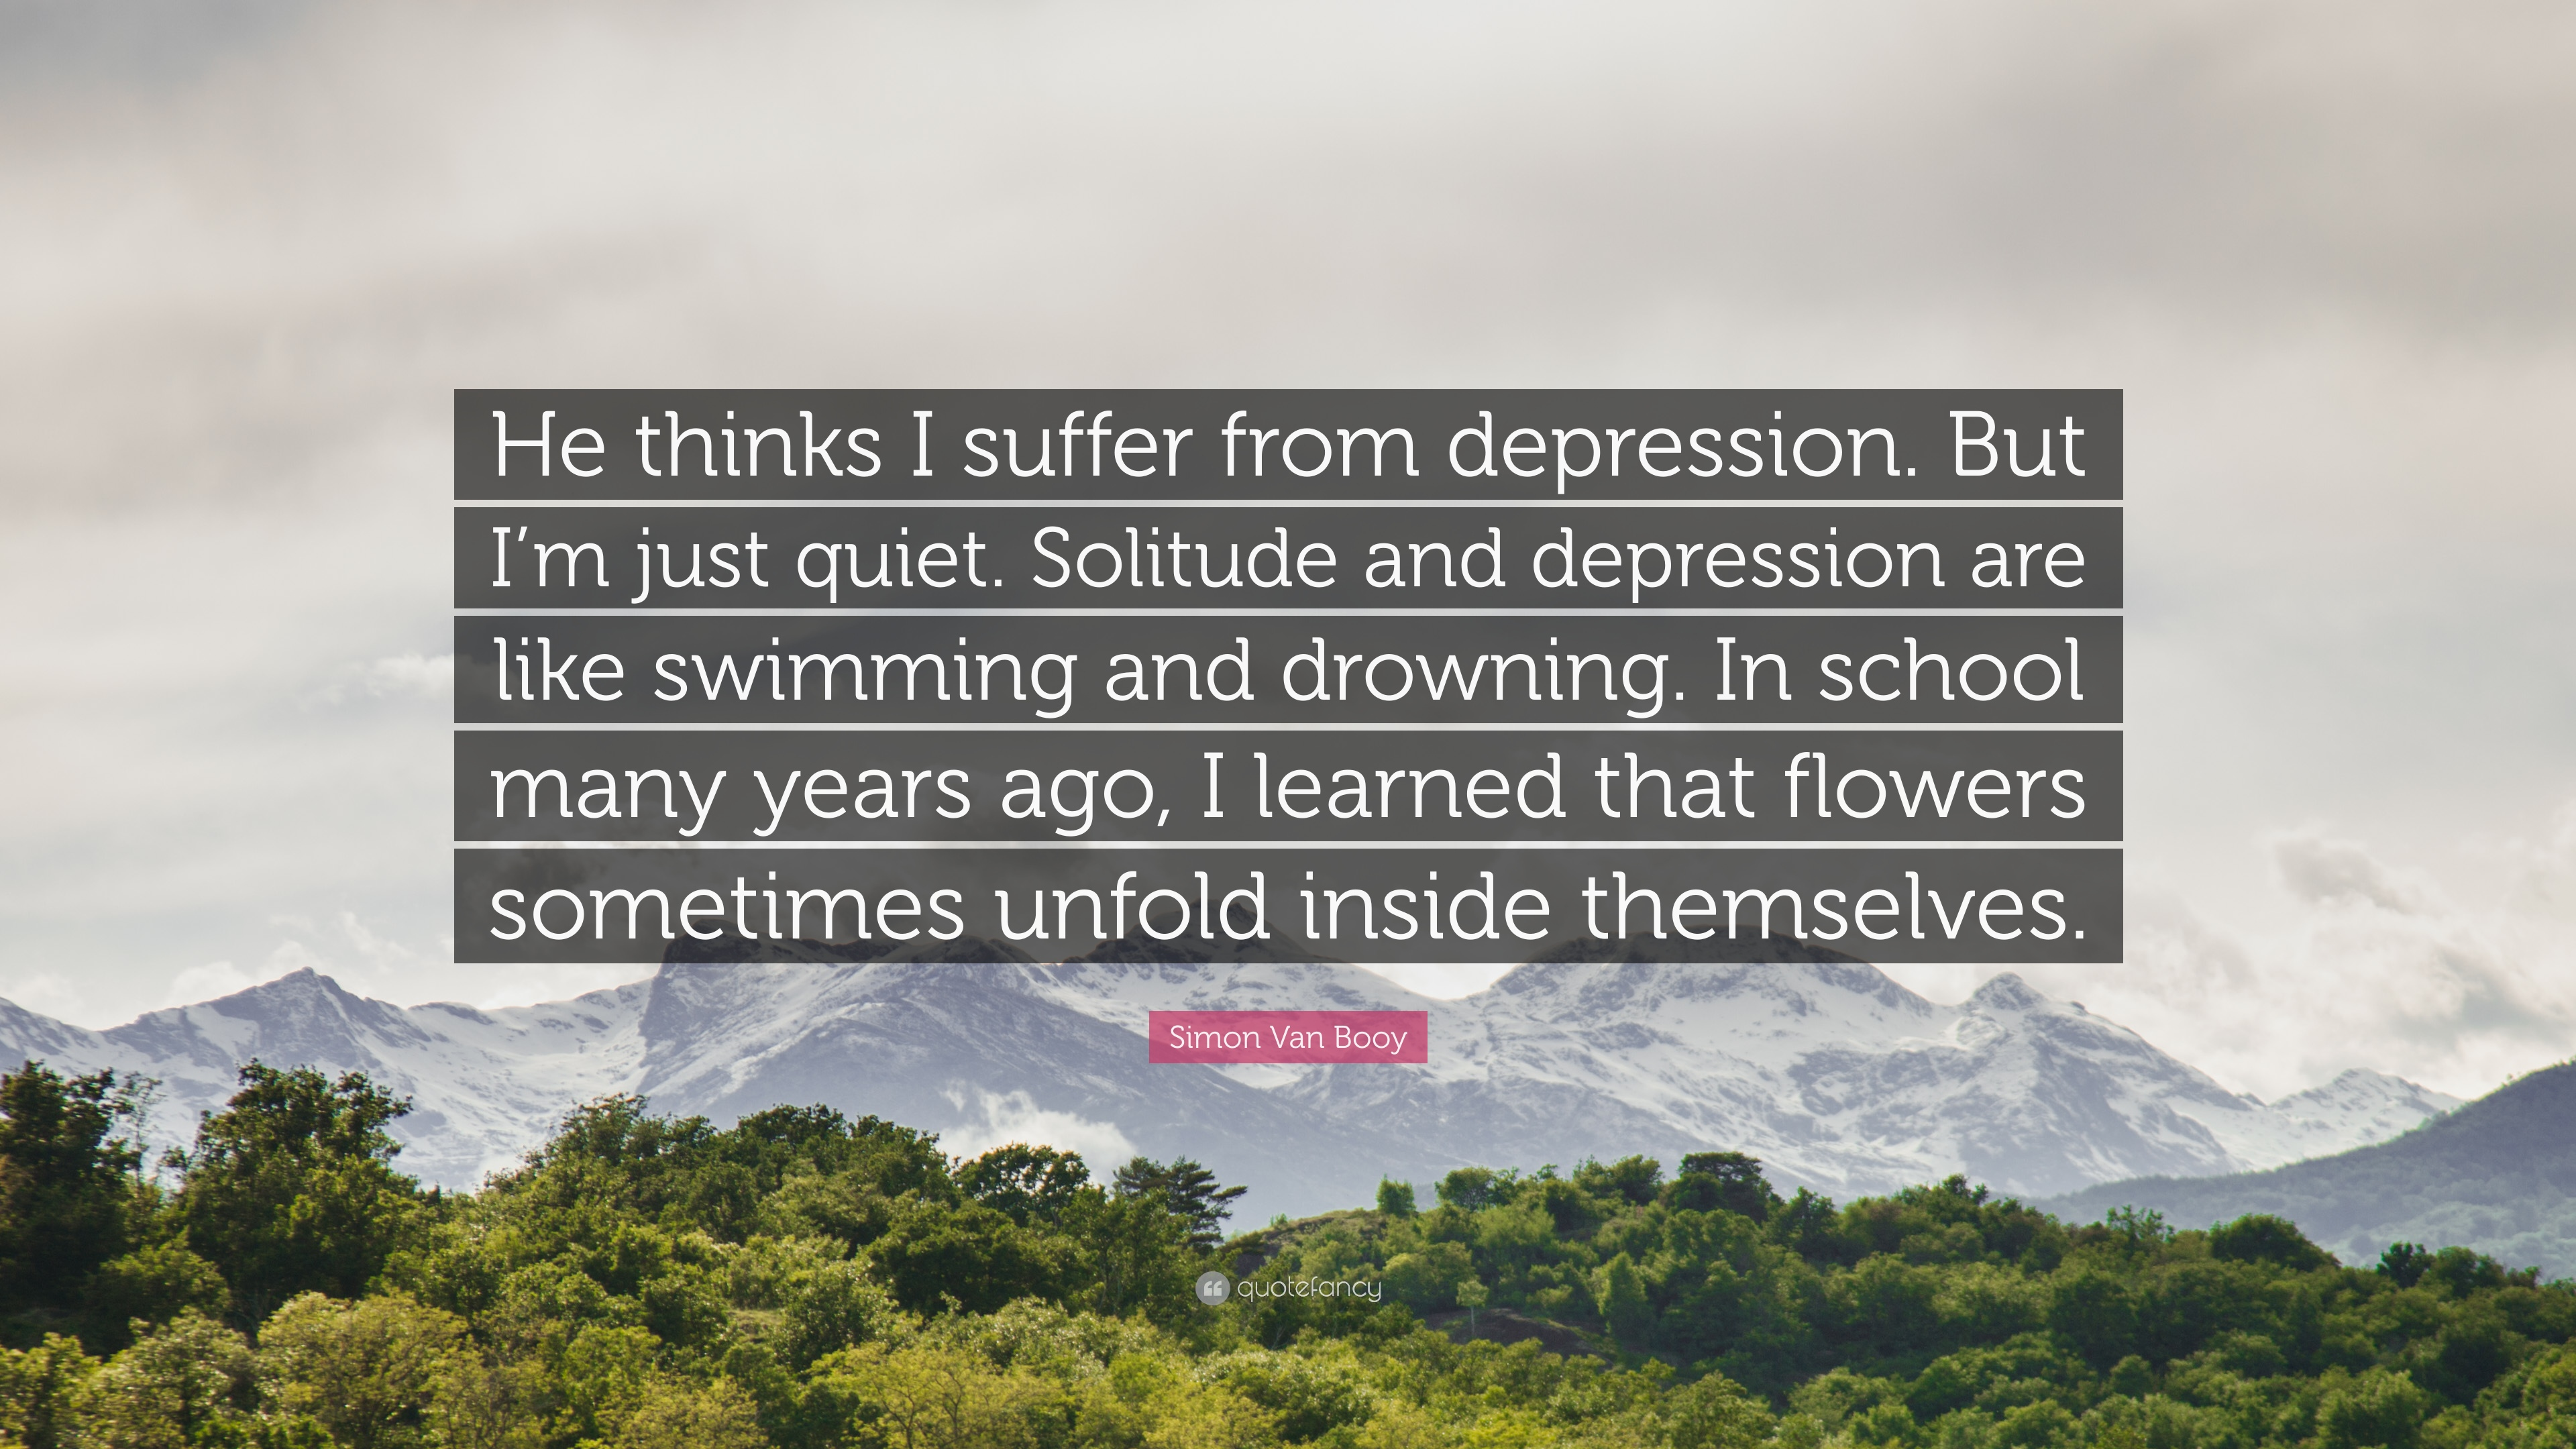 Image of: Ocean Simon Van Booy Quote he Thinks Suffer From Depression But I Quotefancy Simon Van Booy Quote he Thinks Suffer From Depression But Im